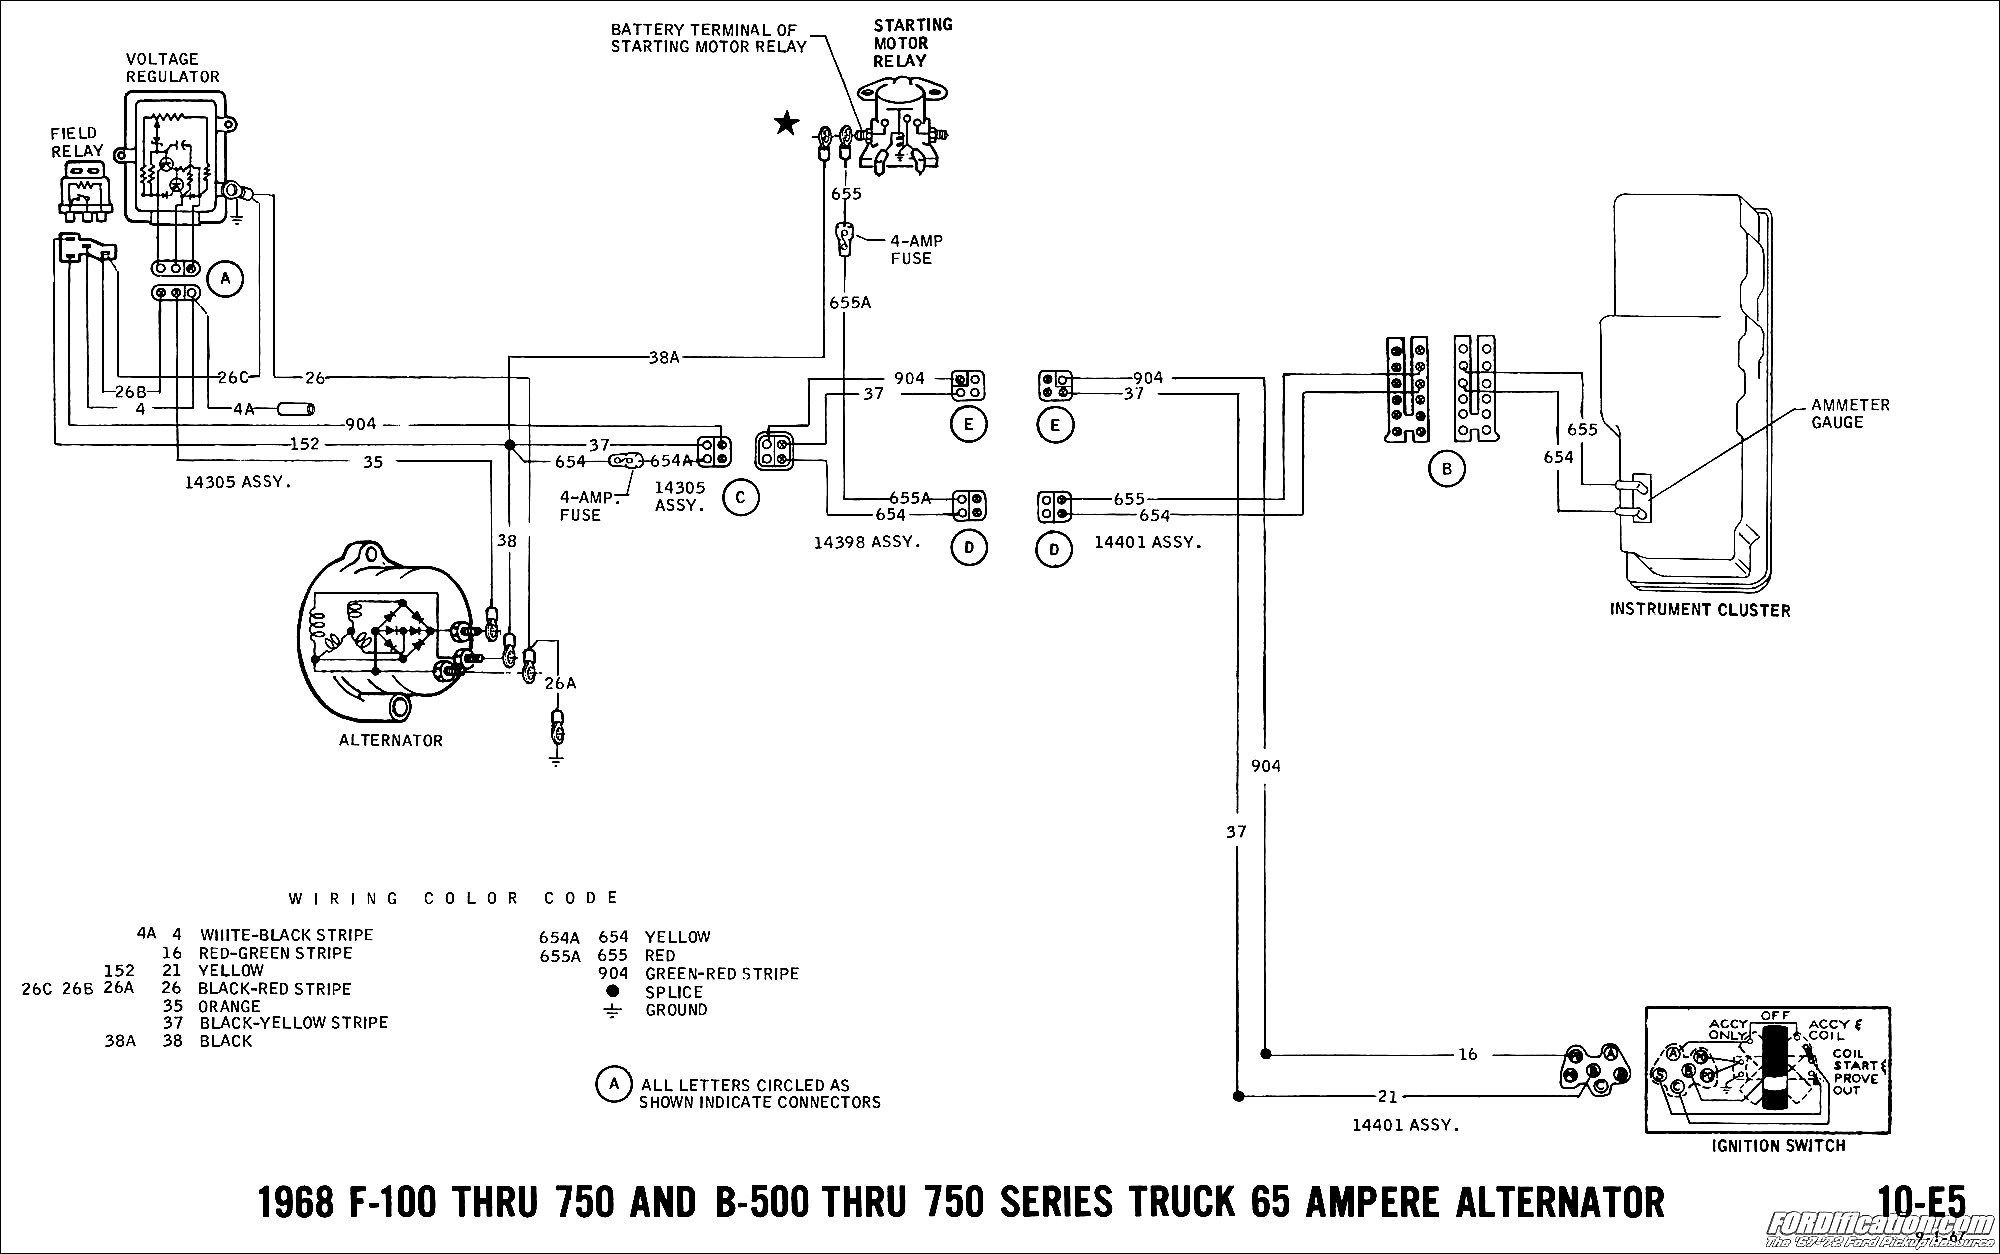 [TVPR_3874]  29 Ford Alternator Wiring Diagram - bookingritzcarlton.info | Electrical  diagram, Alternator, Diagram | Ford 3930 Repair Manual Electrical Wiring |  | Pinterest